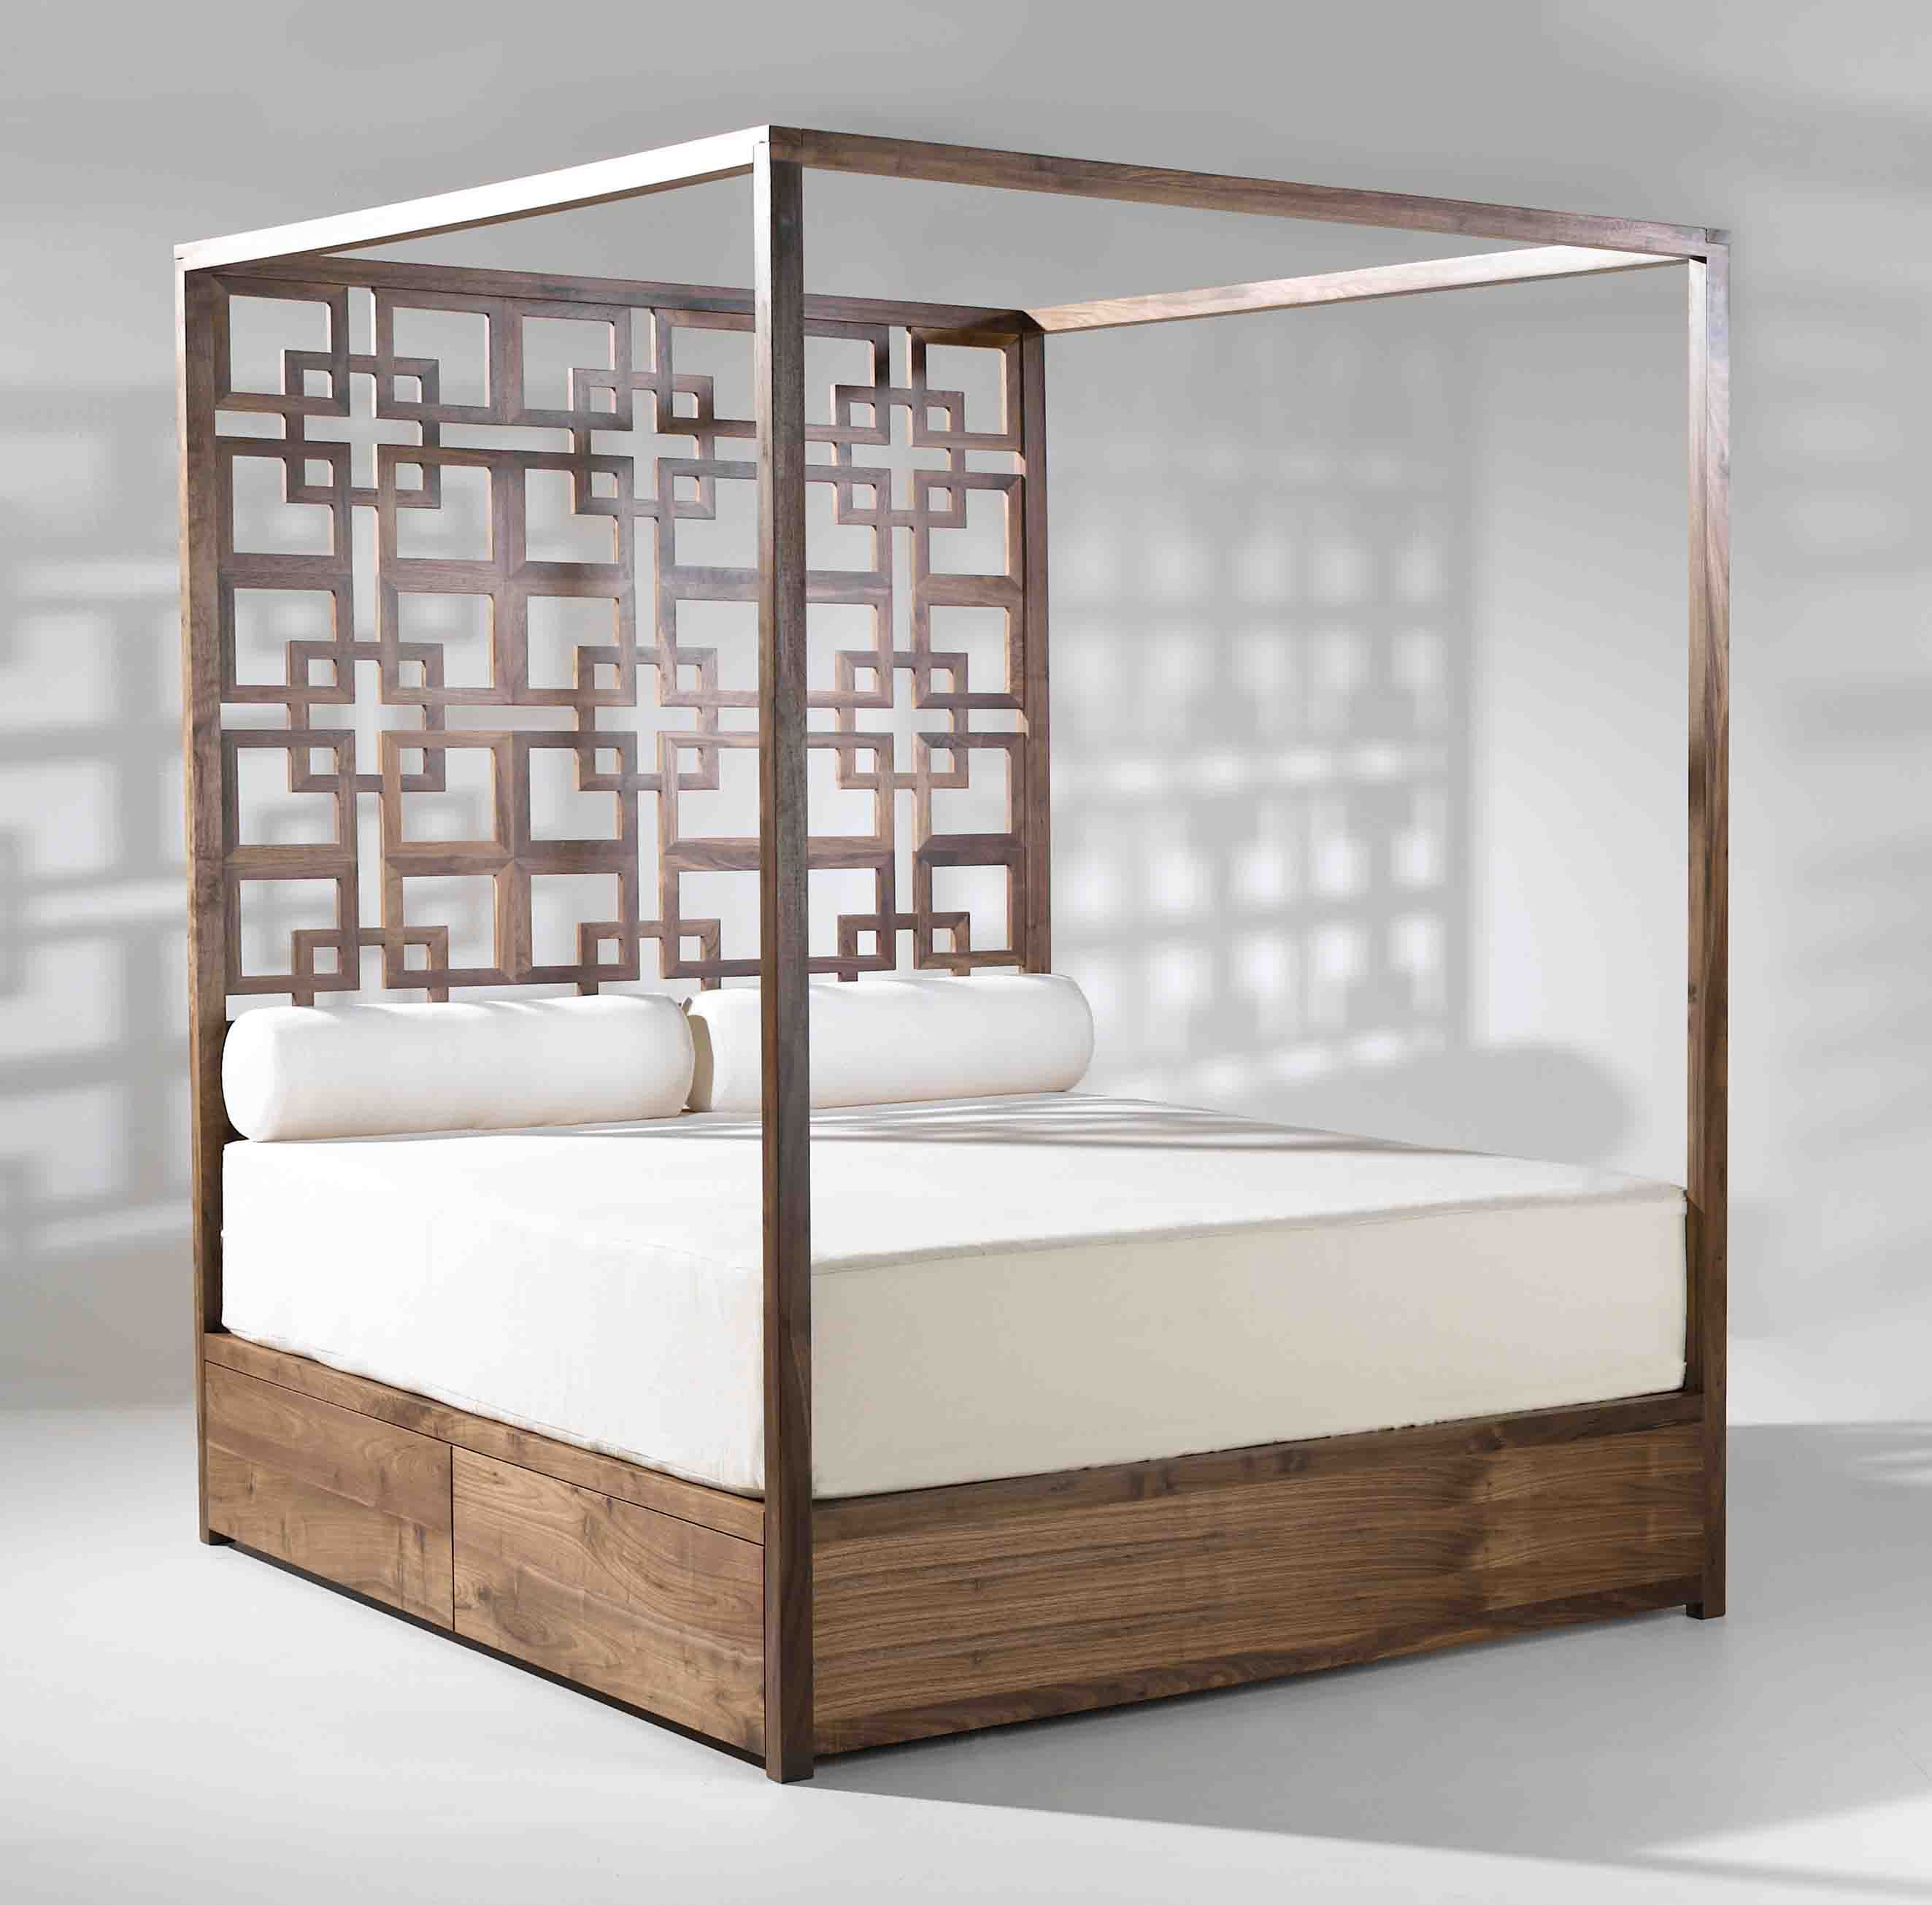 Unpolished Teak Wood Canopy Bed Frame With Accent Headboard Using